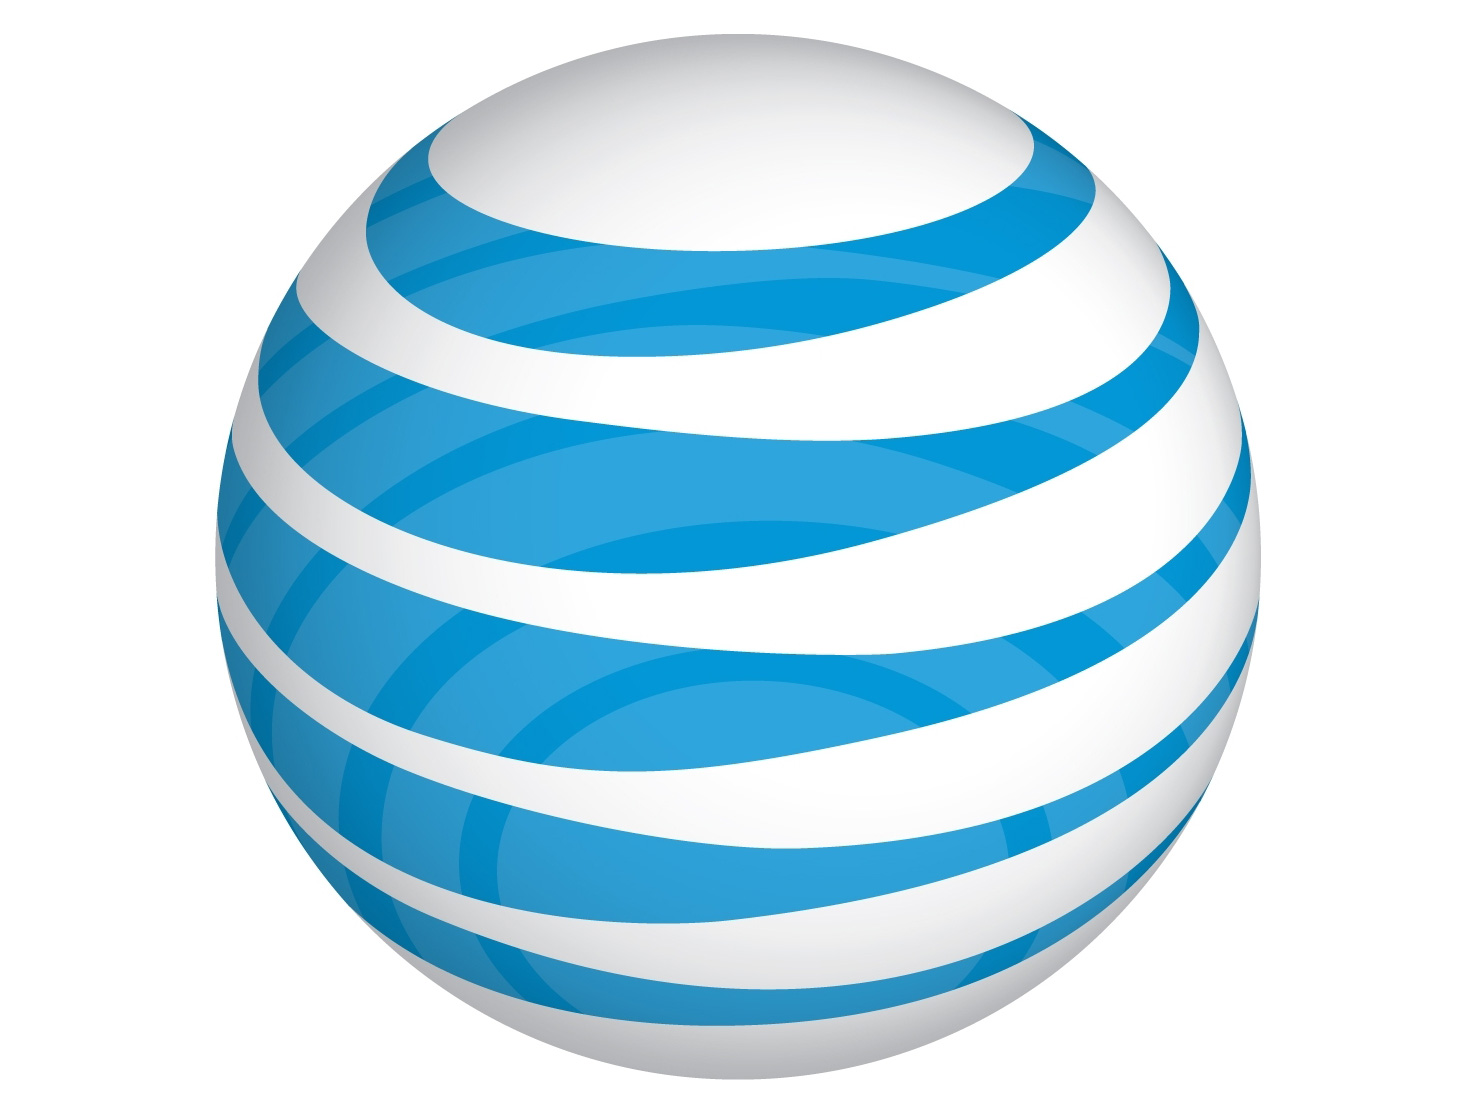 Get a $ AT&T Visa® Reward Card Choose AT&T Internet for Business and receive a valuable reward card to spend on your business. You'll get reliable internet connectivity, a two-year broadband price guarantee, and no term commitment.